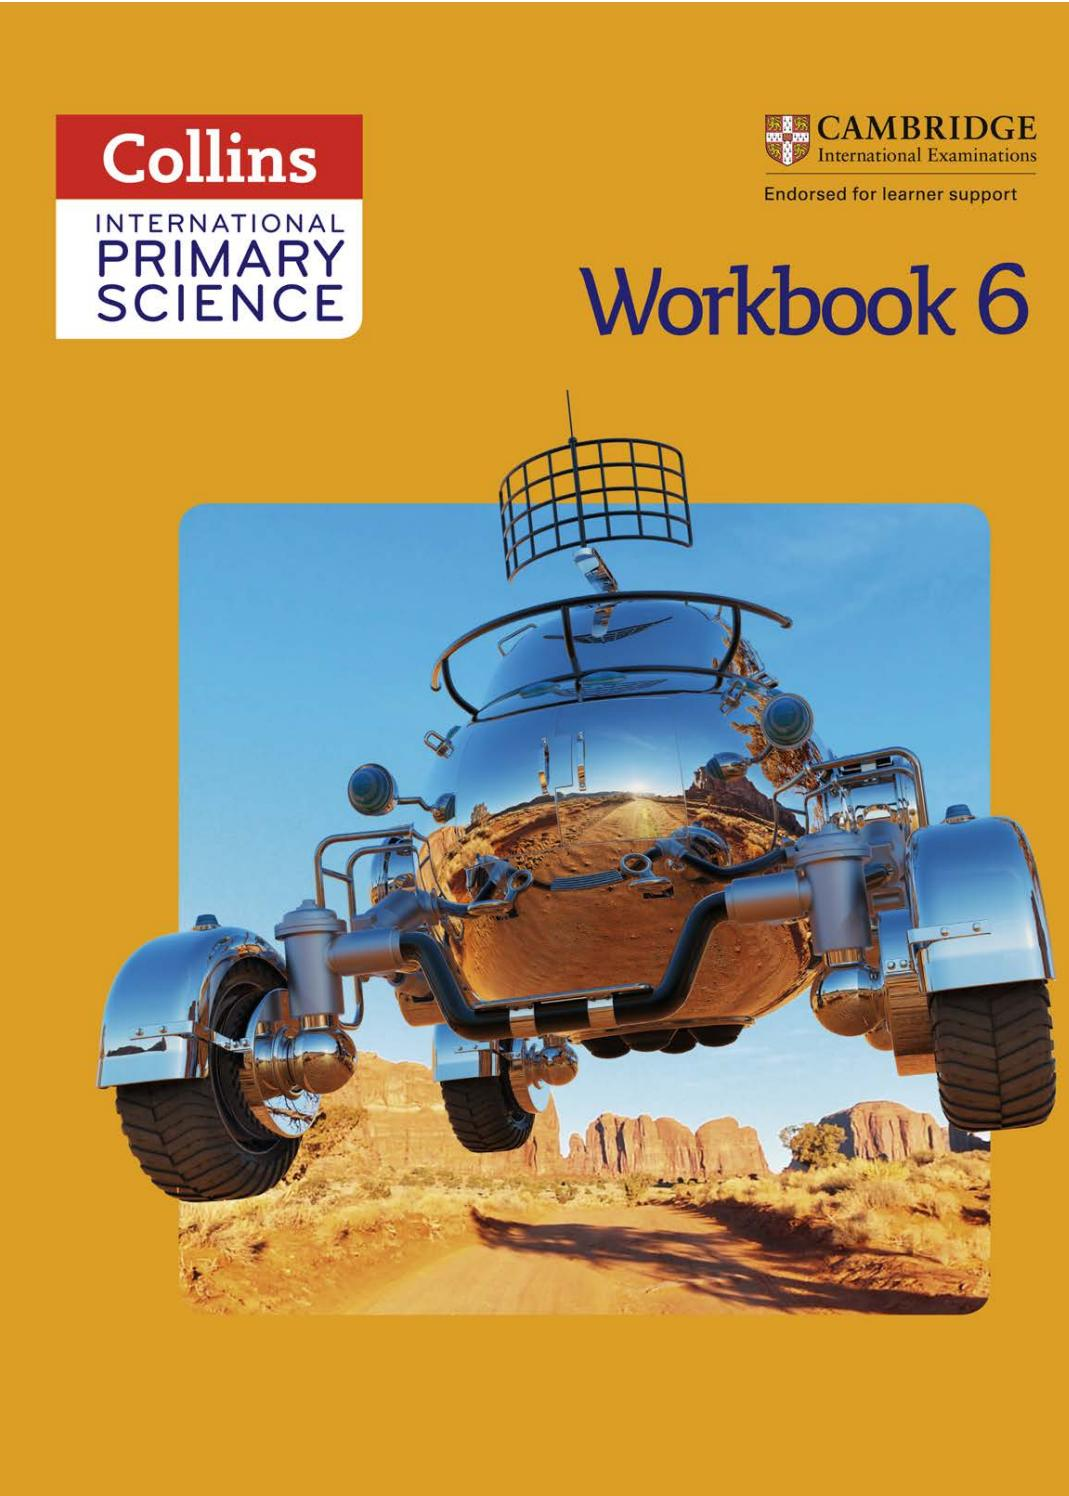 International Primary Science Workbook 6 by Collins - issuu